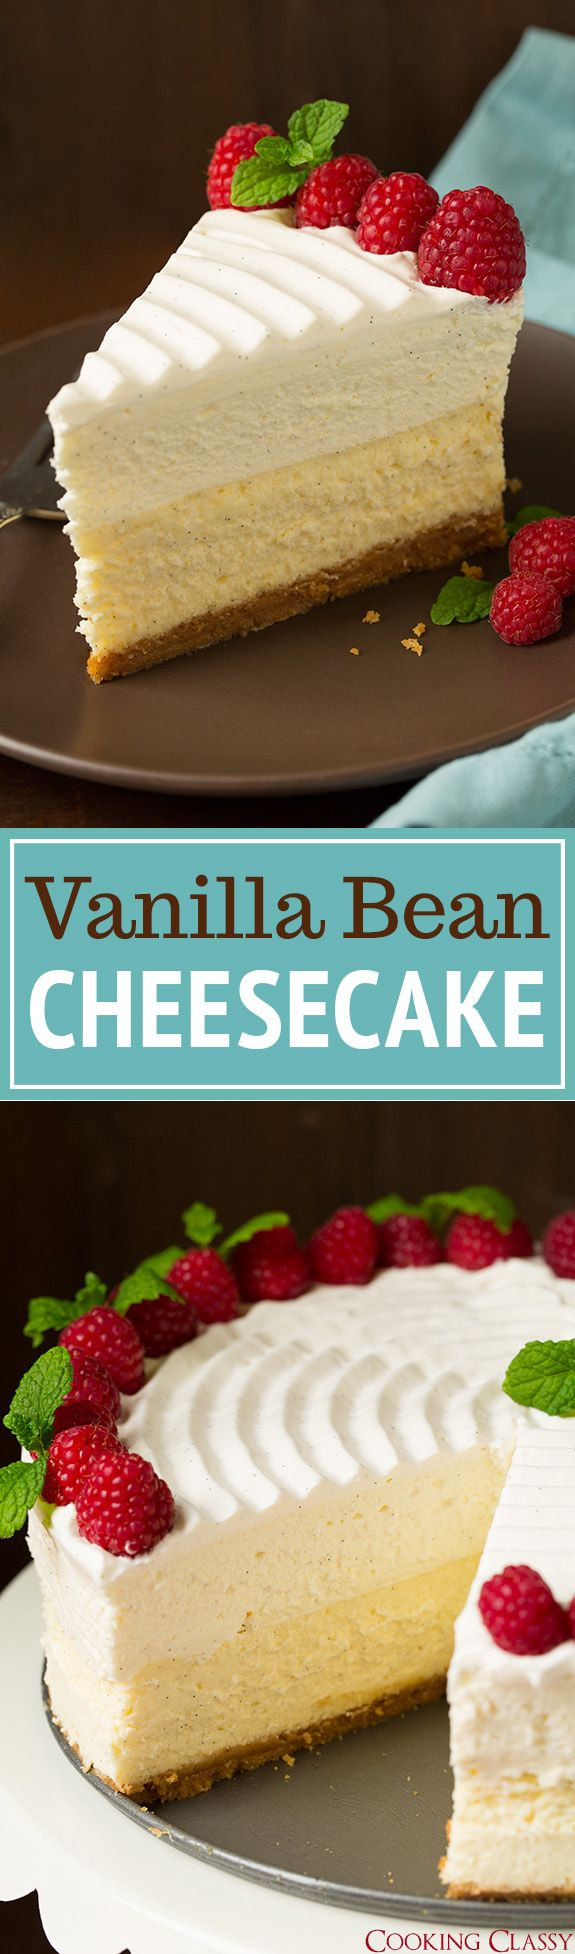 Vanilla Bean Cheesecake (Cheesecake Factory copycat) - this is the BEST CHEESECAKE EVER!! Buttery graham crust, decadent vanilla bean cheesecake, sweet white chocolate mousse and fluffy whipped cream